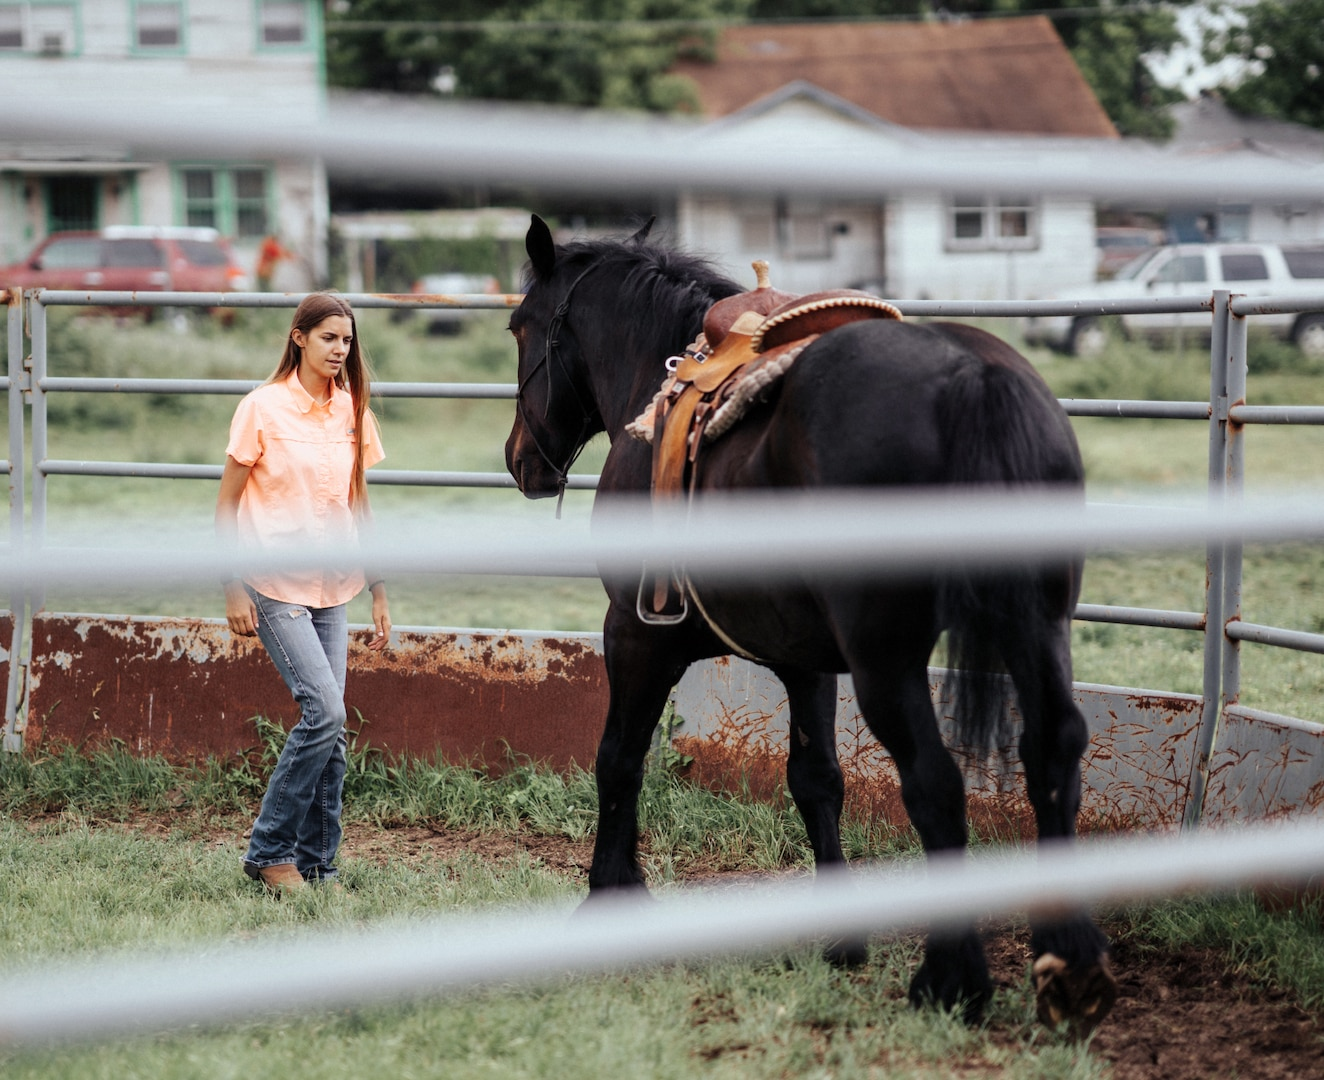 Caroline Stryjewski, an equine trainer for the U.S. Army North Caisson Platoon, conducts groundwork exercises.